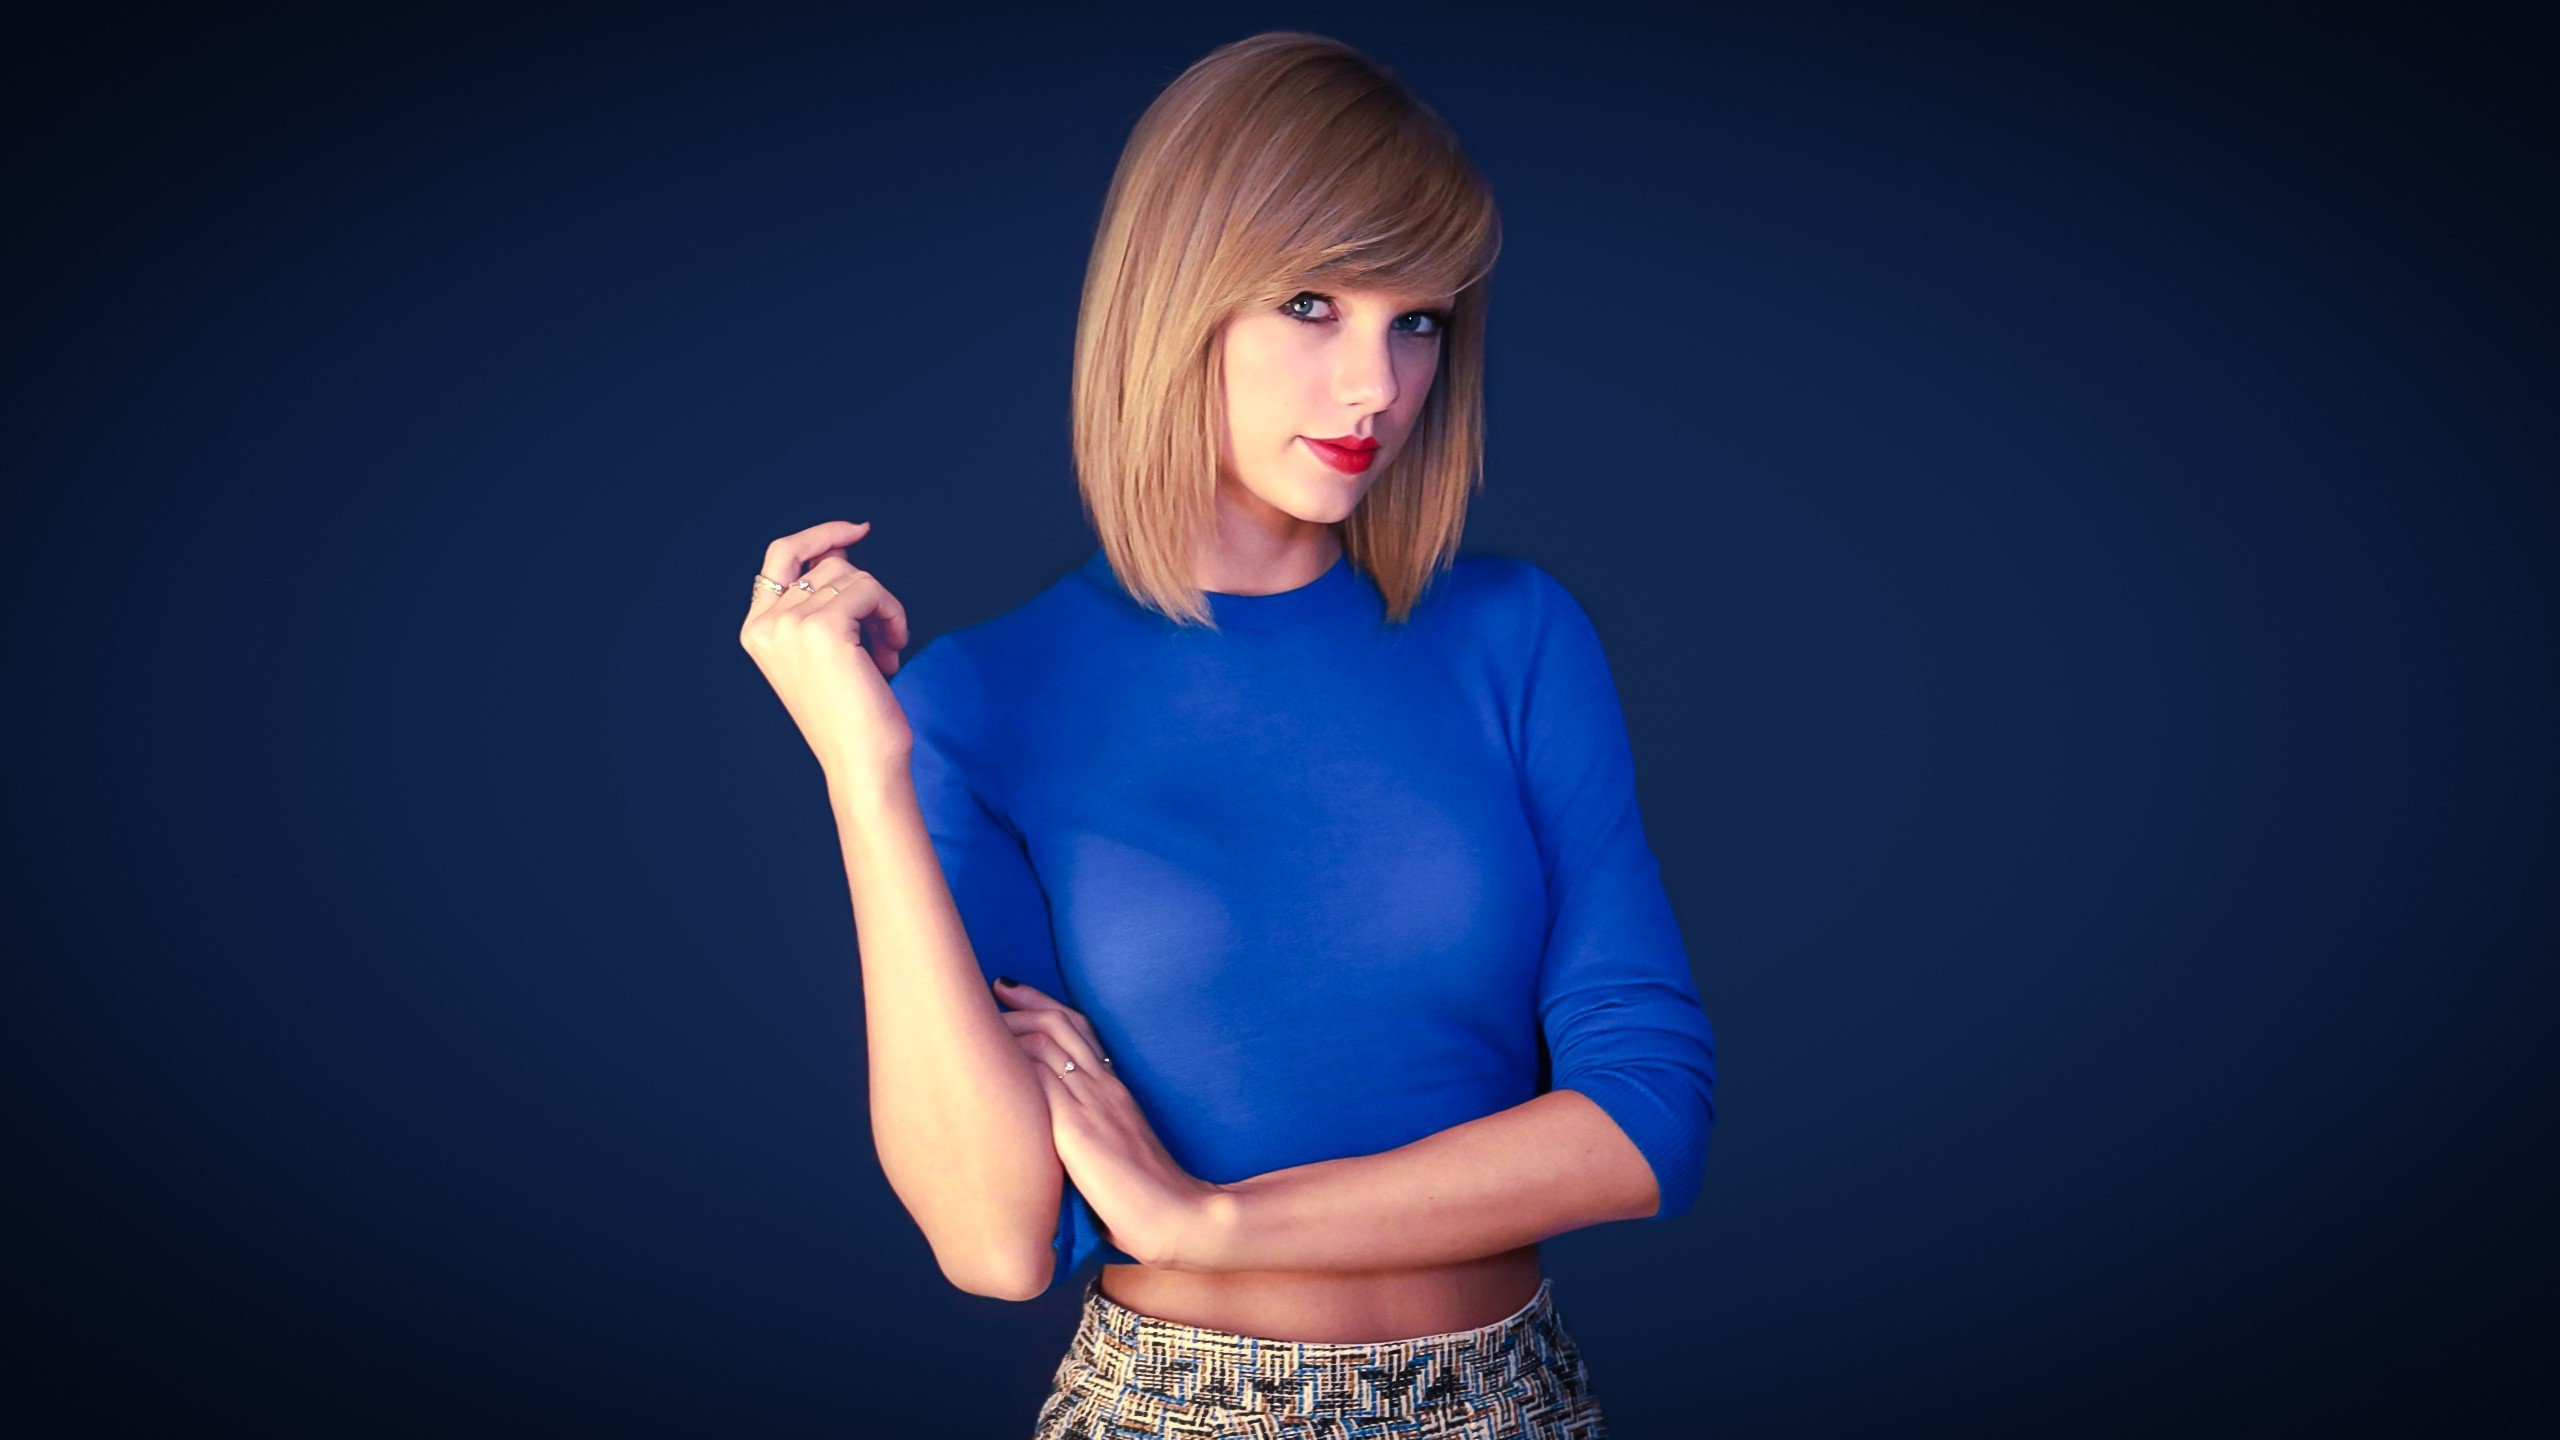 2048x1152 taylor swift new 2048x1152 resolution hd 4k wallpapers